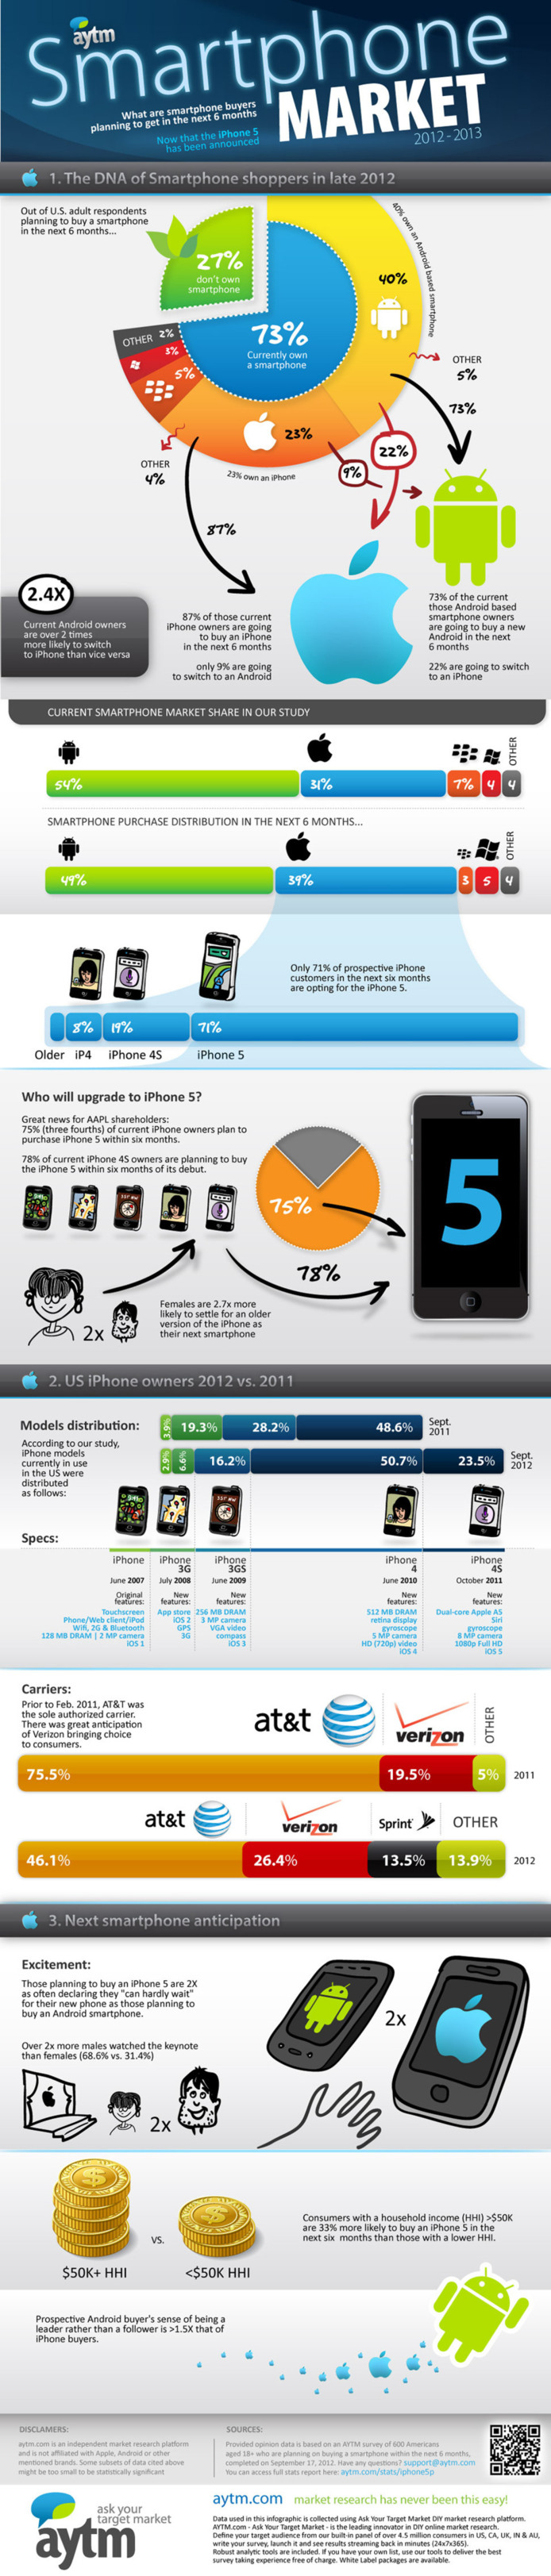 L'iPhone 5 peut il affecter le march des smartphones? (en 1 image)